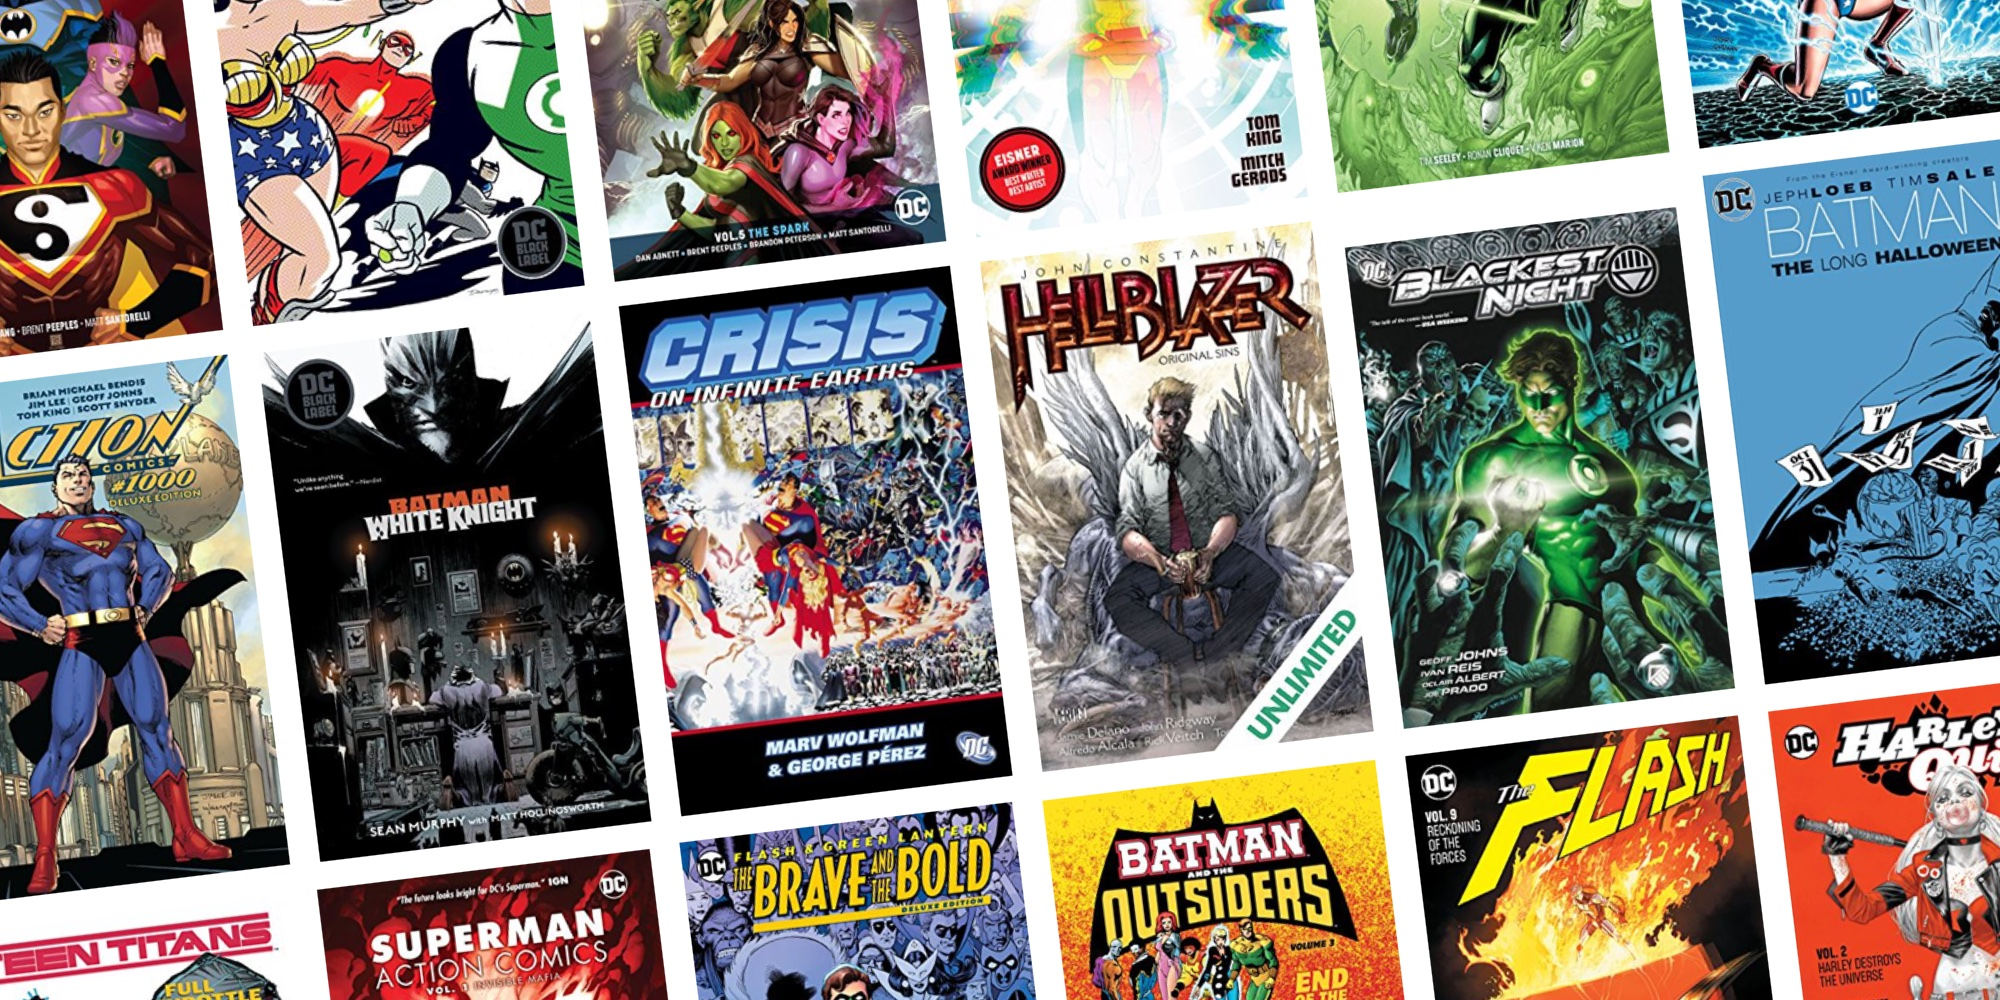 ComiXology's Memorial Day sale takes up to 85% off DC Comics graphic novels and issues from $1